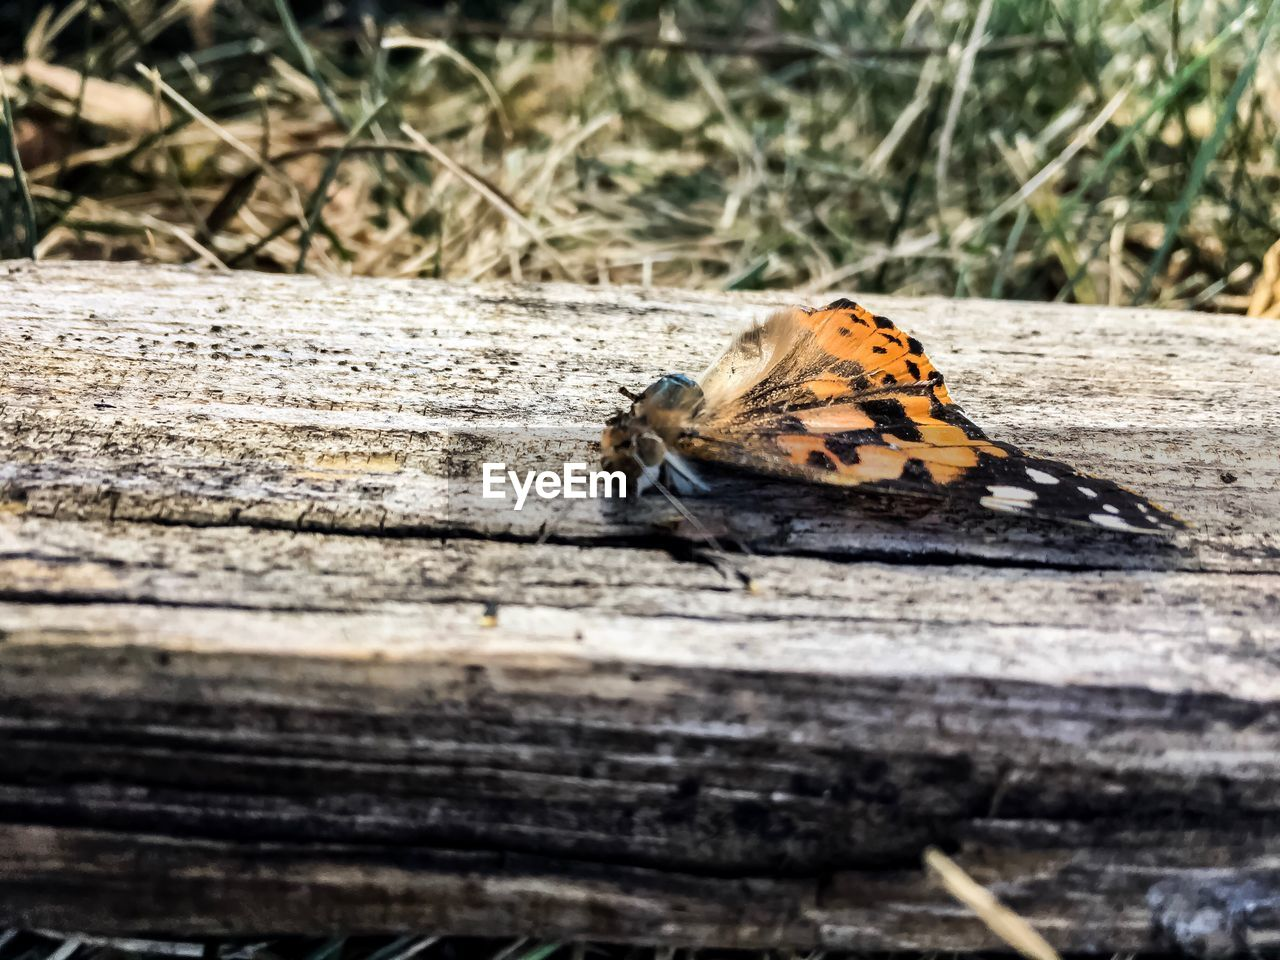 animal themes, animals in the wild, one animal, no people, insect, animal wildlife, outdoors, day, nature, butterfly - insect, close-up, sunlight, perching